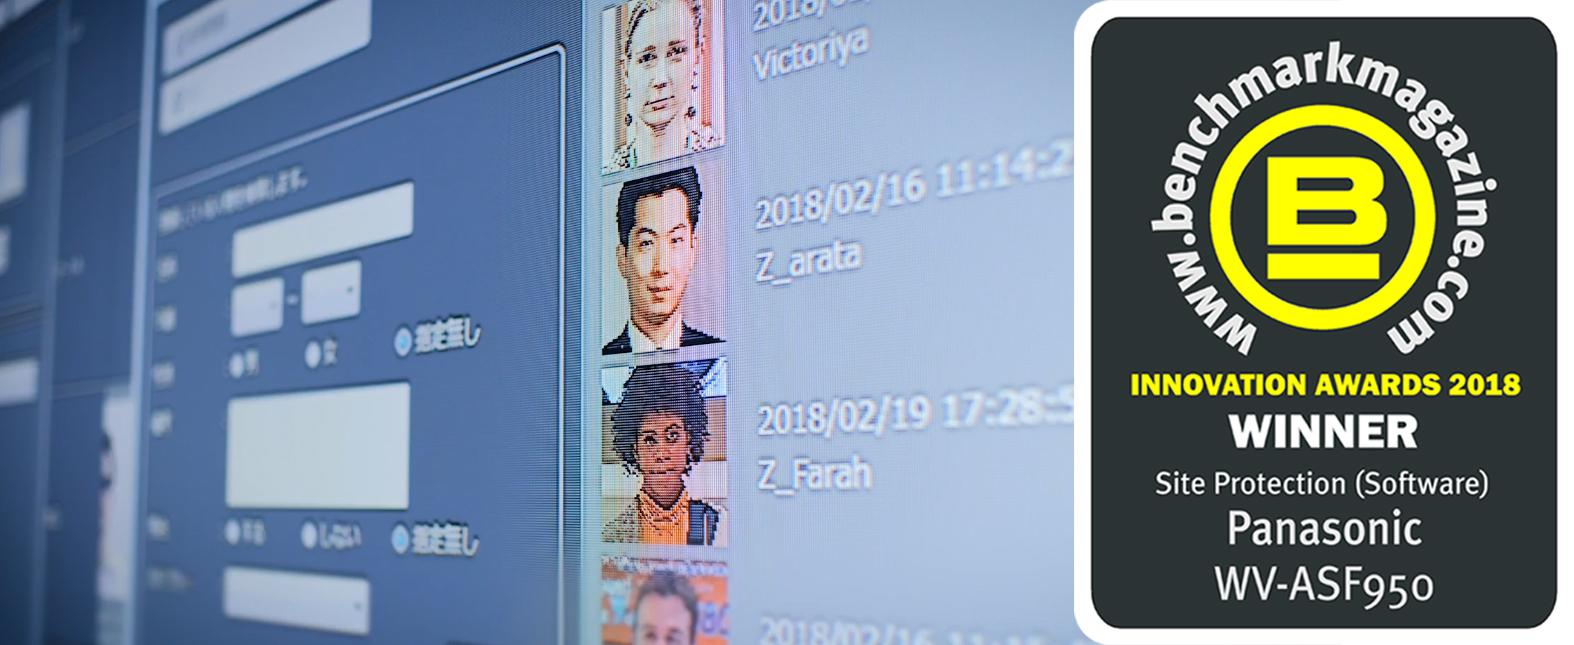 image: Panasonic facial recognition technology wins Benchmark Innovation Award